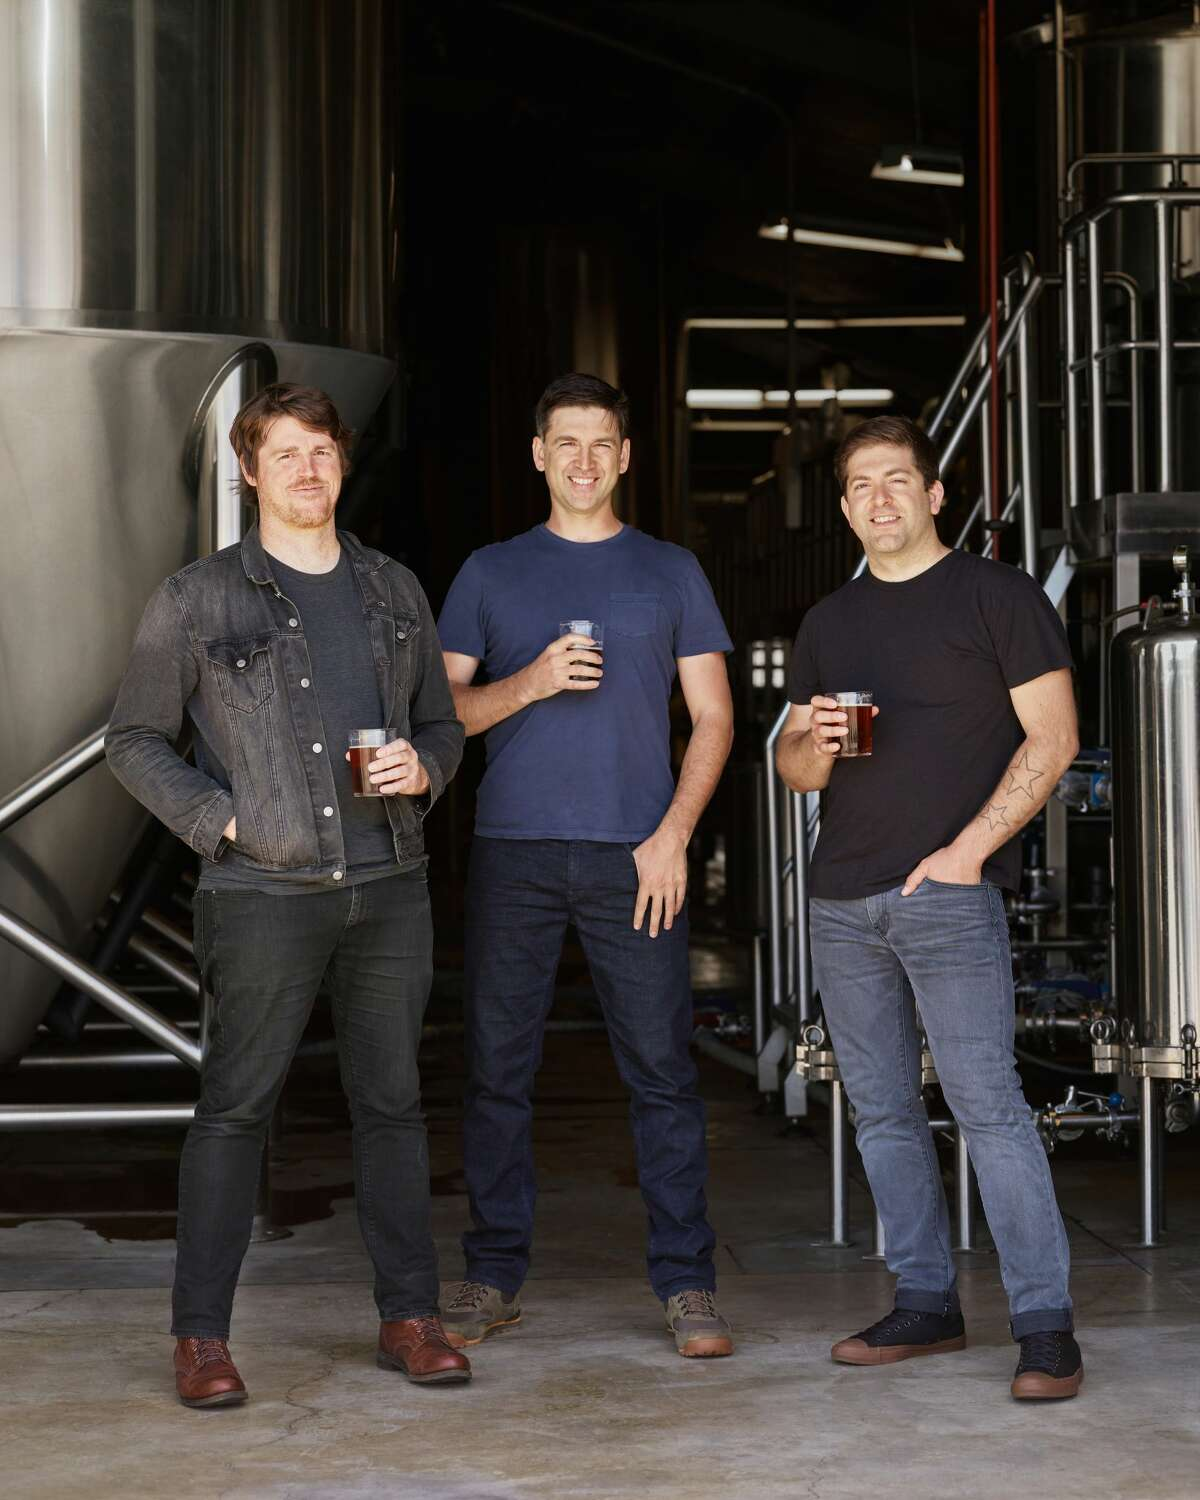 Pictured: (l-r) Fort Point brewmaster Mike Schnebeck and co-founders Tyler Catalana and Justin Catalana.